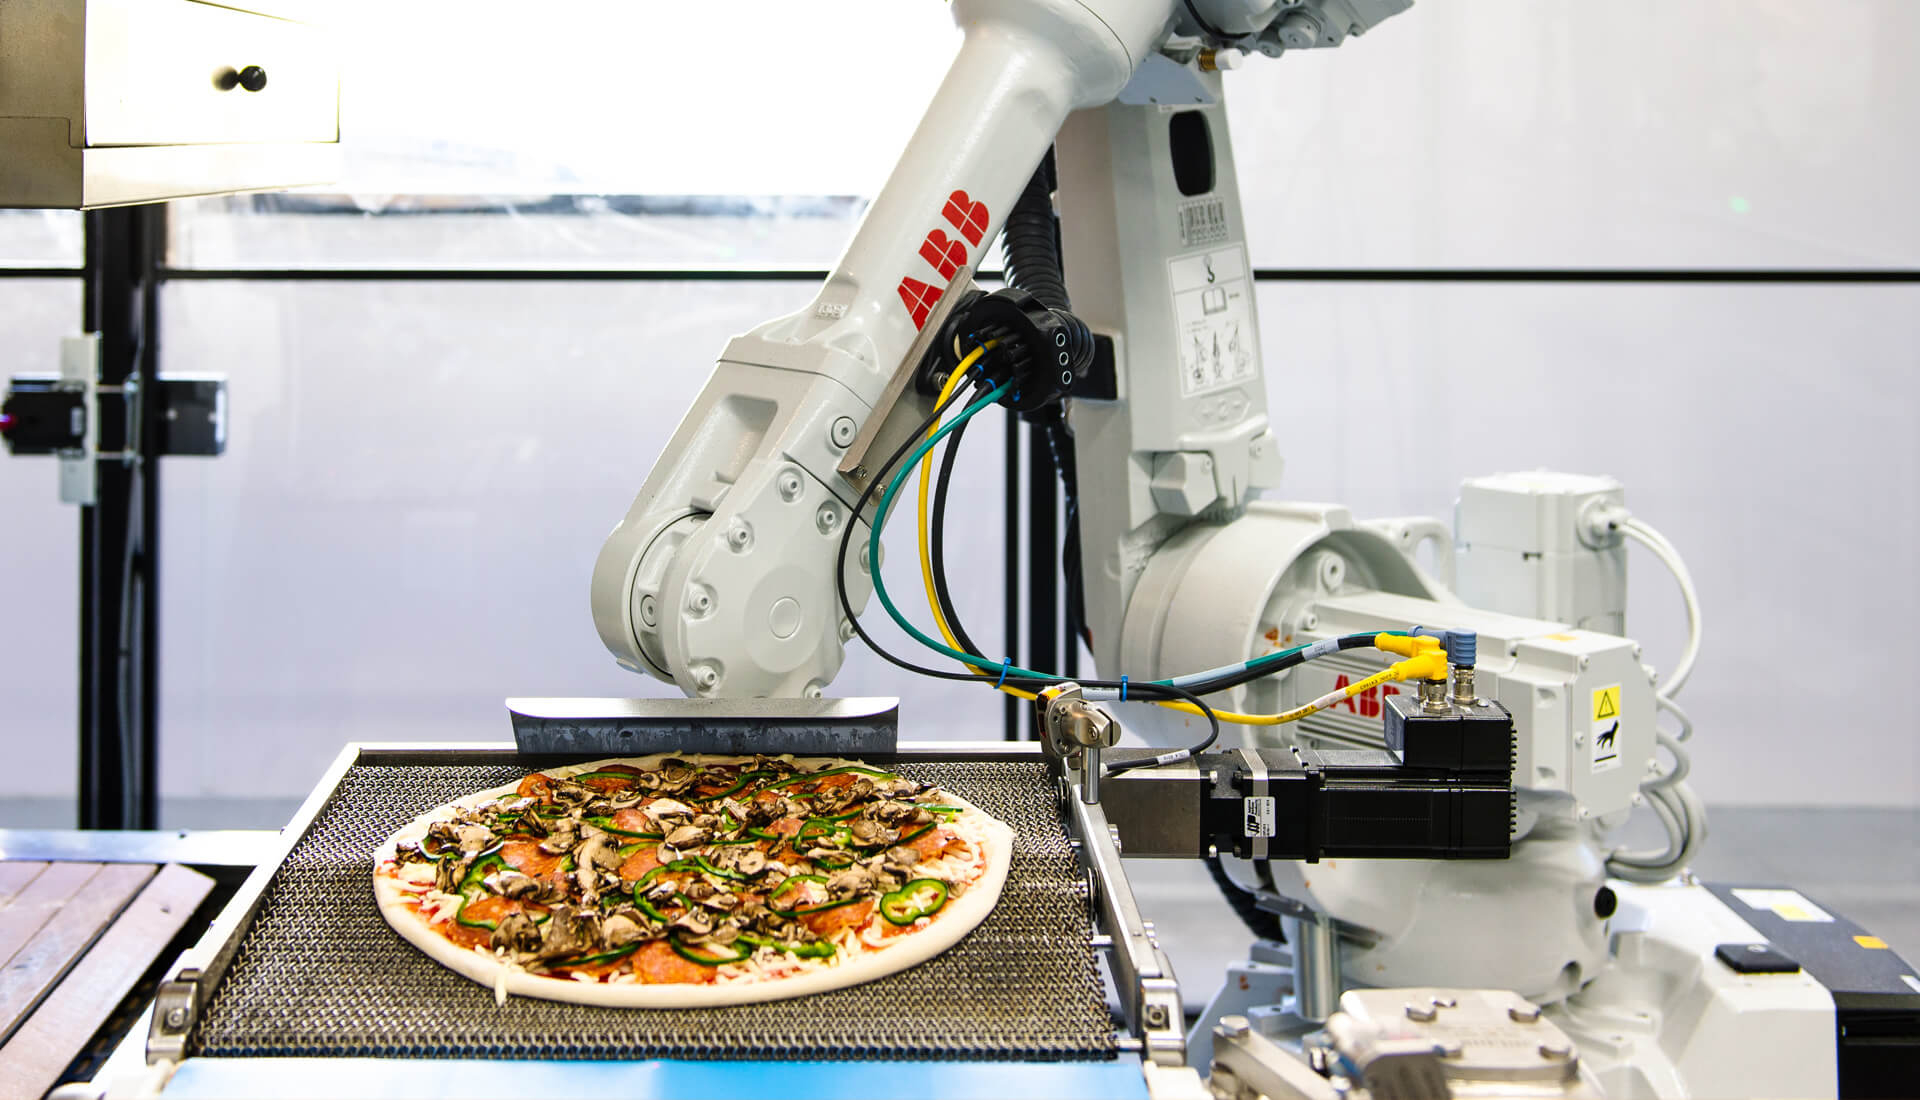 Zume pizza-making robot